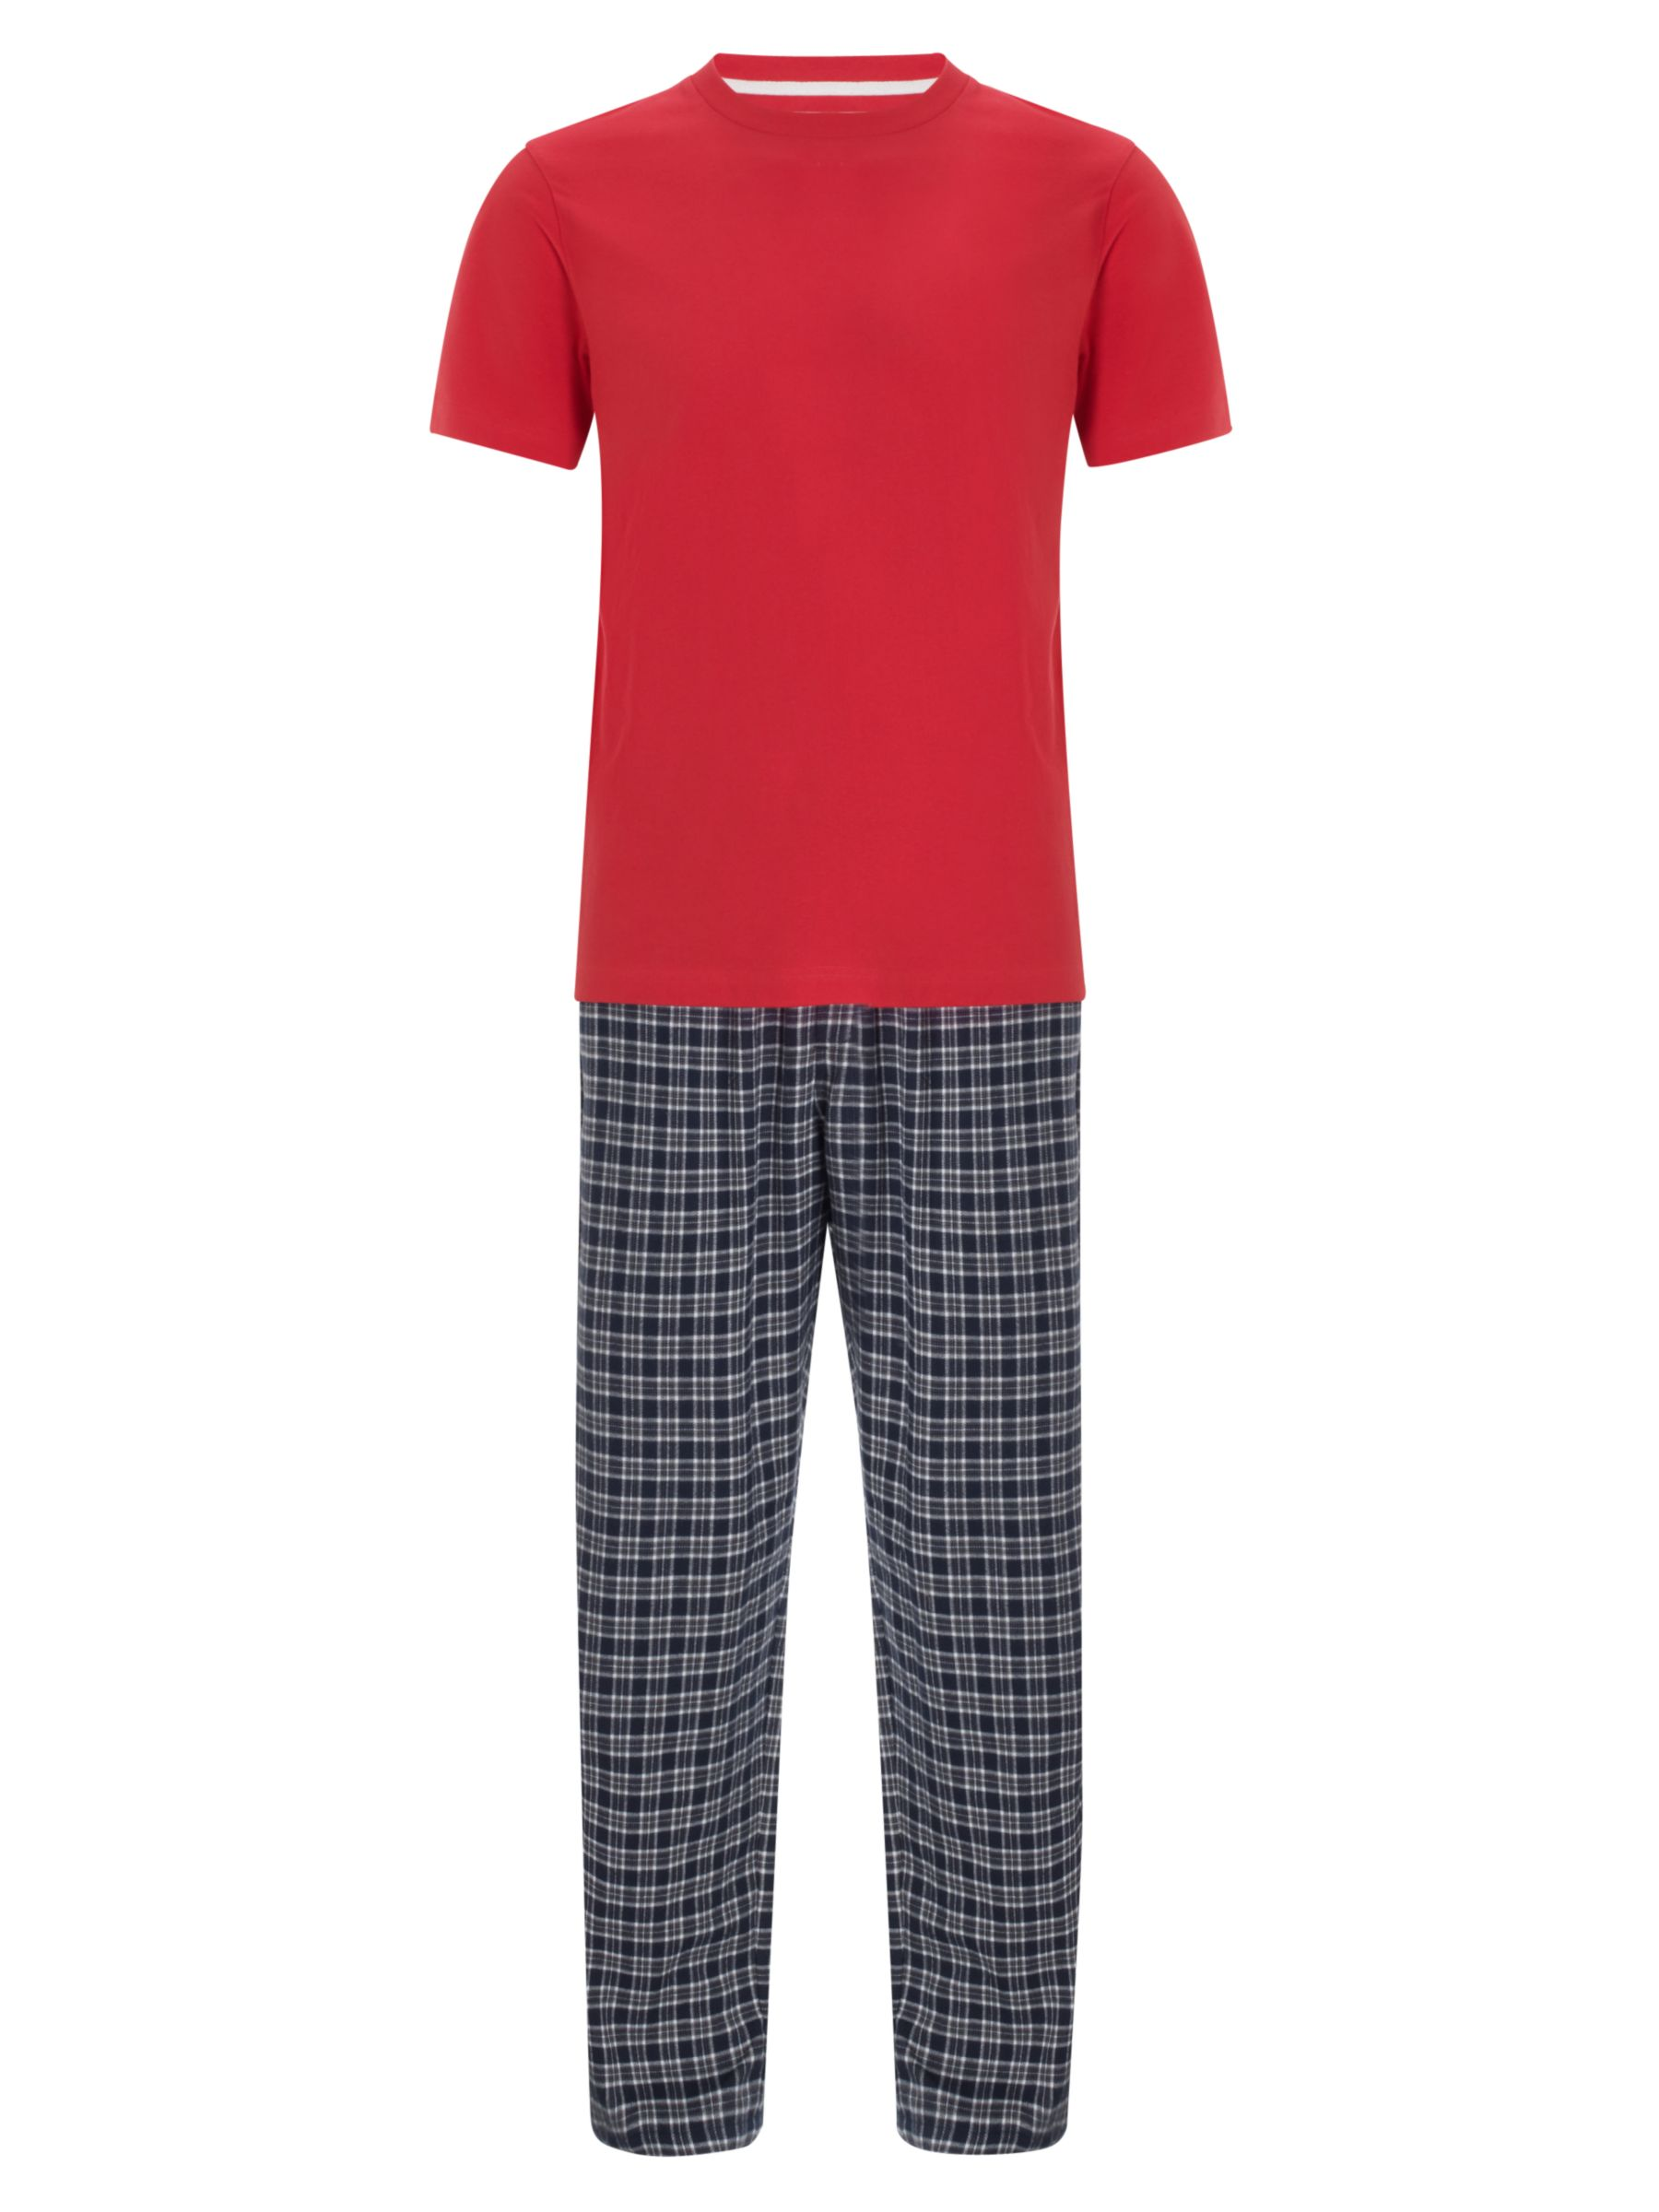 John Lewis Short Sleeve T-Shirt and Brushed Cotton Check Pyjama Pants